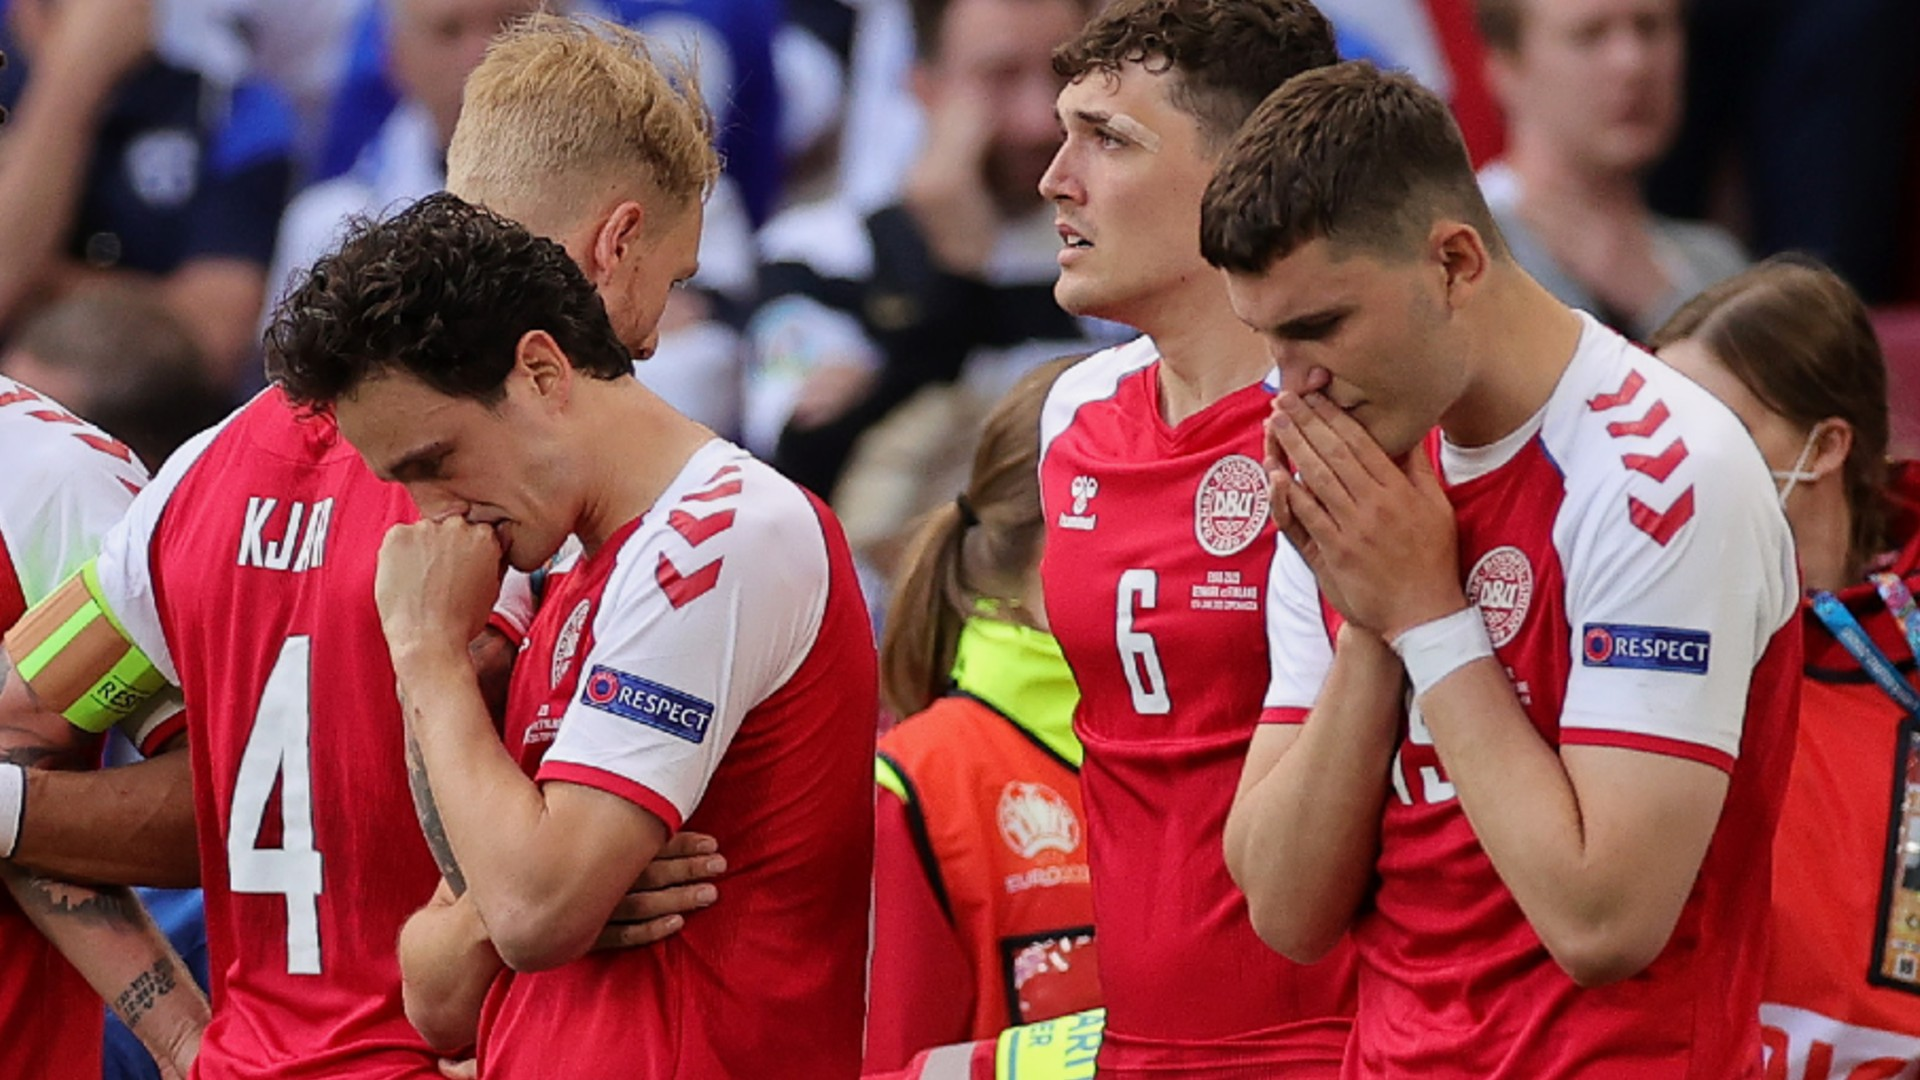 Denmark: UEFA only gave two options to resume the match after Christian Eriksen collapsed